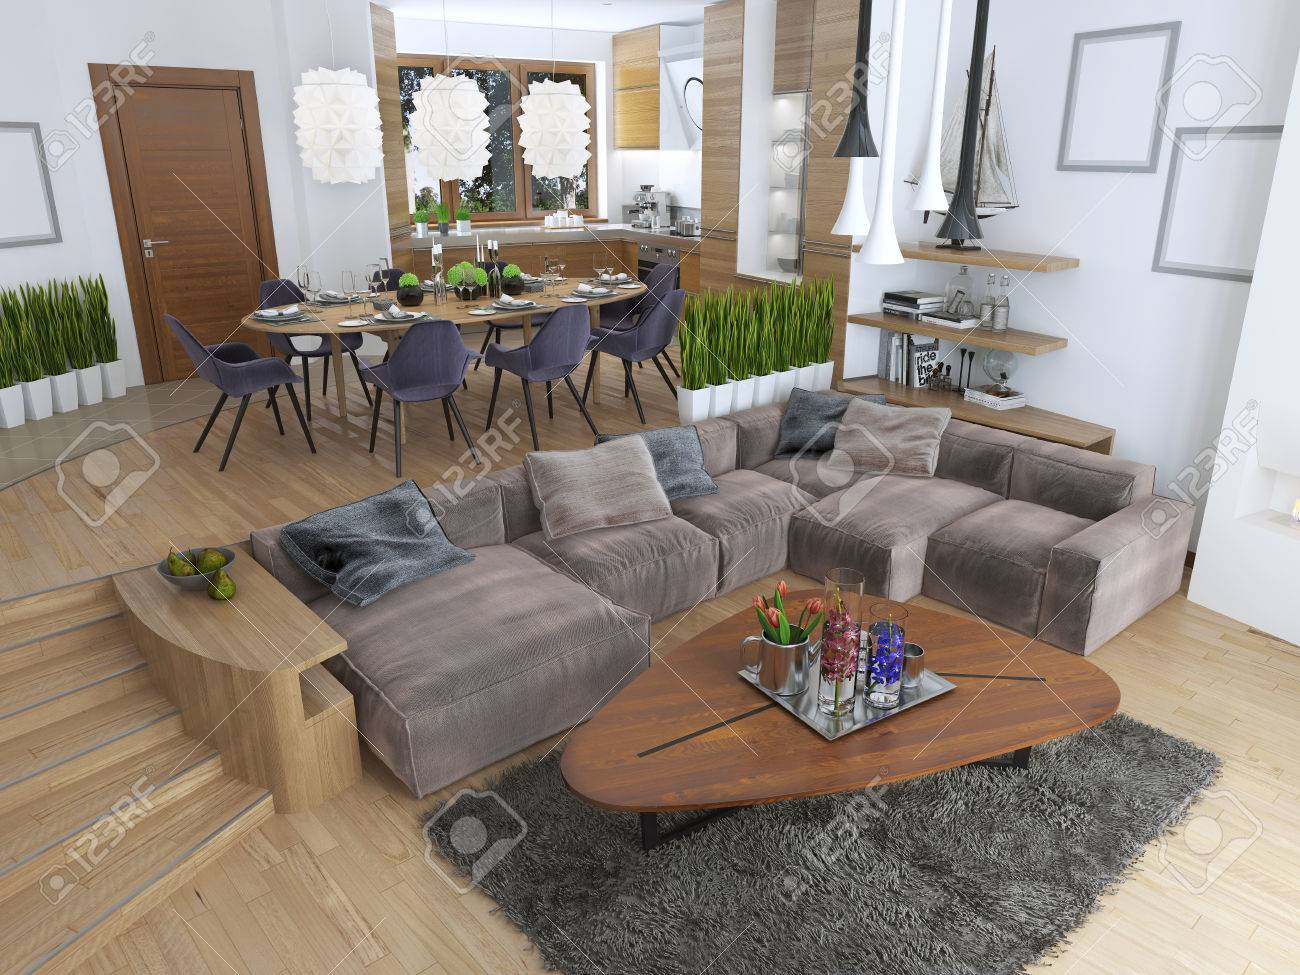 Full Size of The Room Is A Studio With Kitchen And Dining Area And A Living R Küche Anrichte Küche